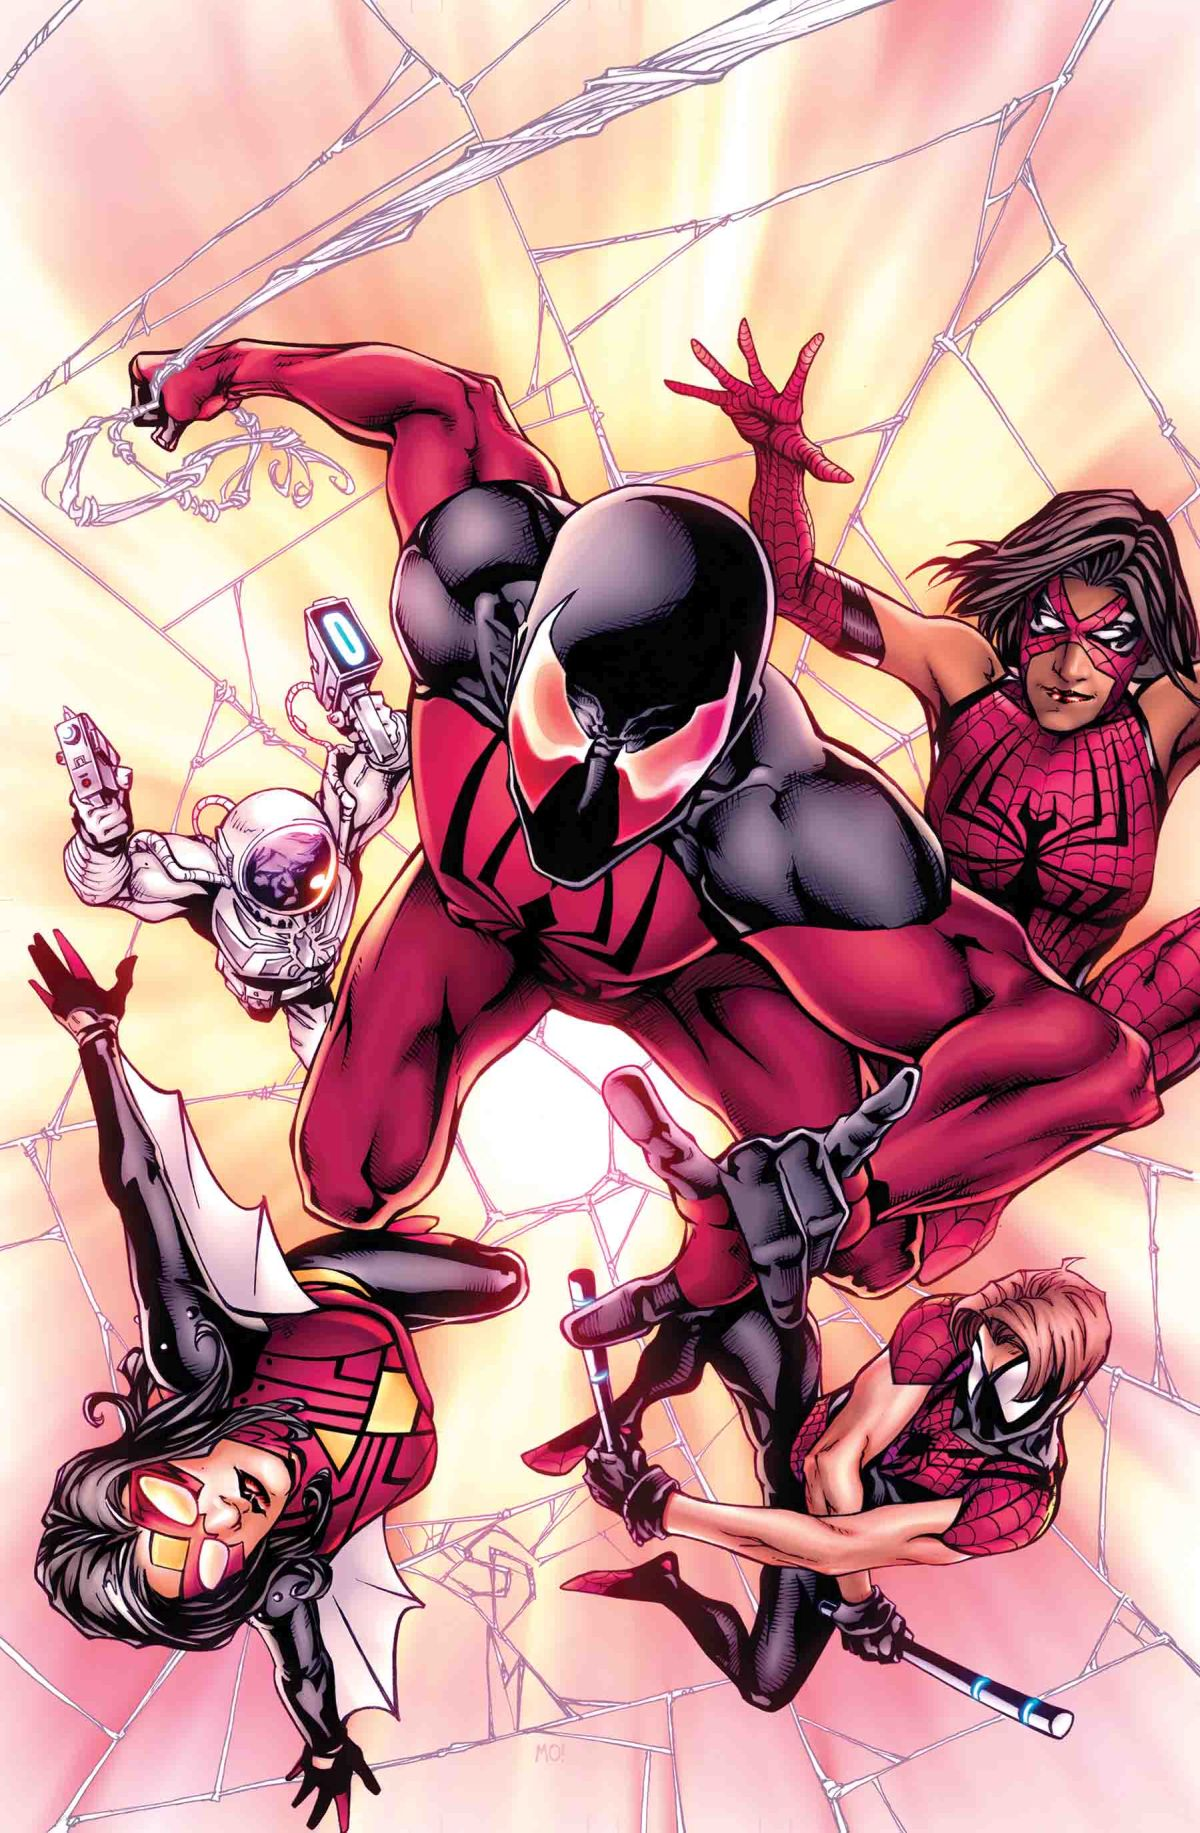 SPIDER-FORCE #1 (of 3)